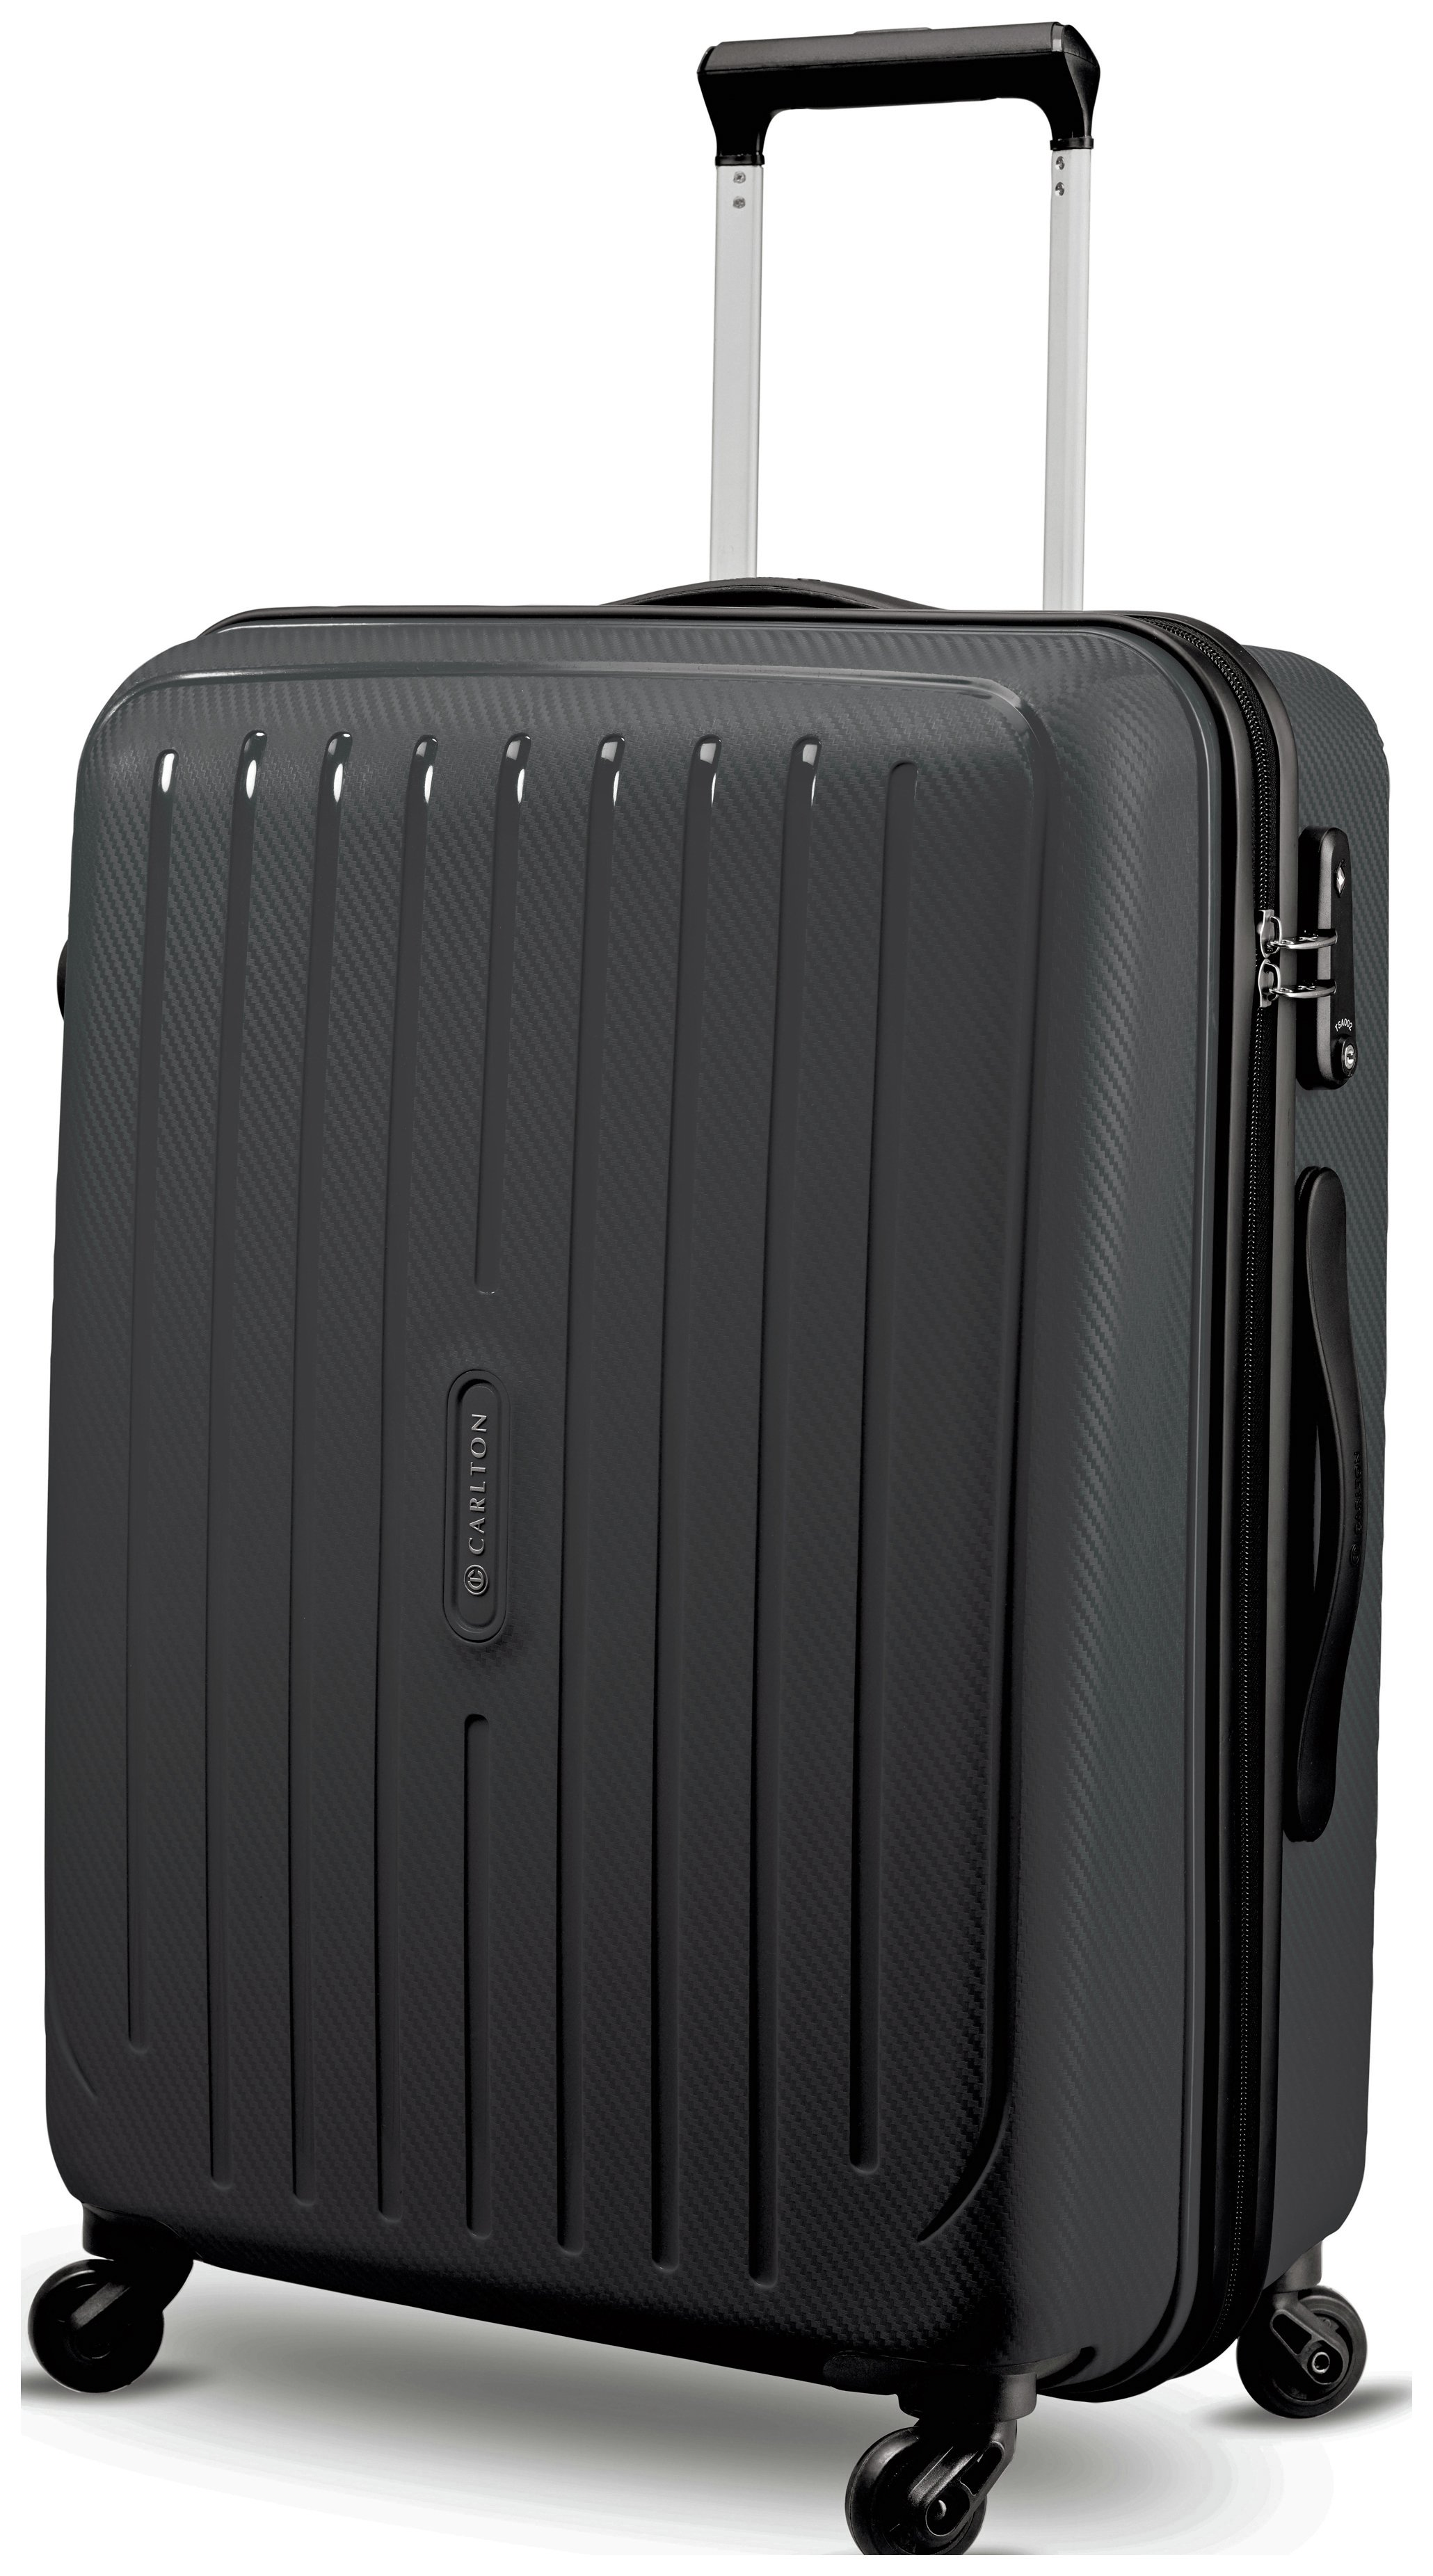 Buy Carlton Pheonix Large 4 Wheel Hard Suitcase - Black at Argos ...